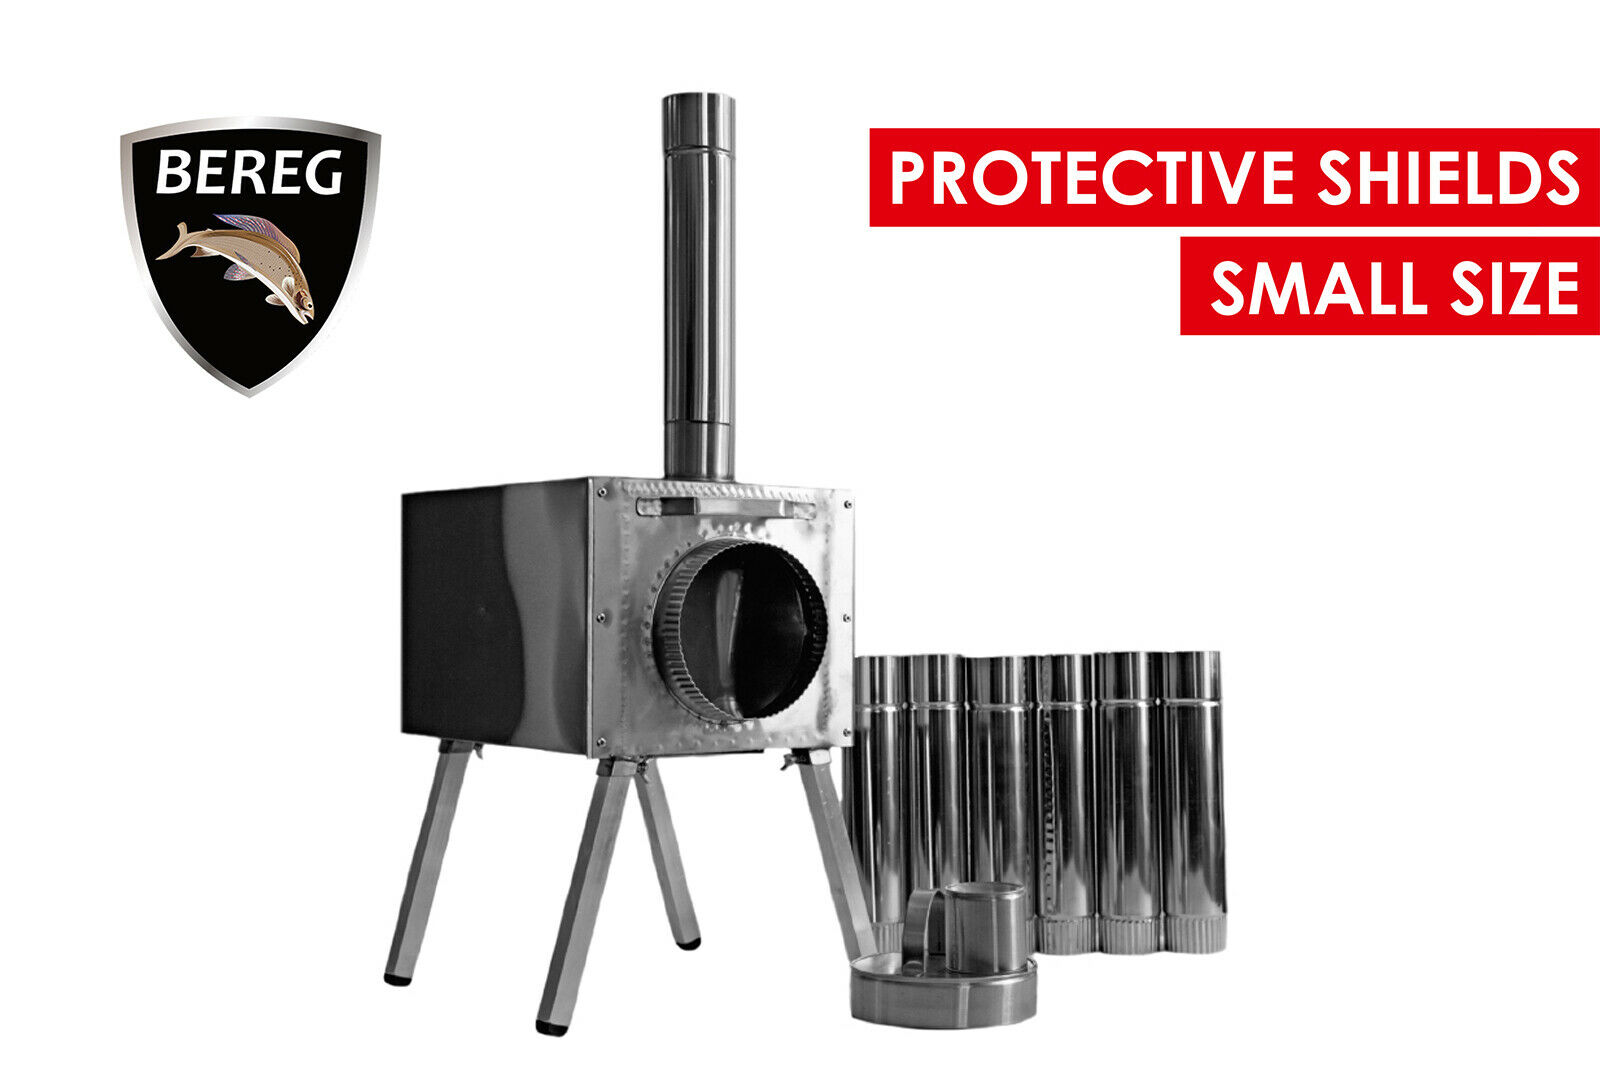 Small Wood Stove  Economical  Bereg for safe camping, fishing and hunting